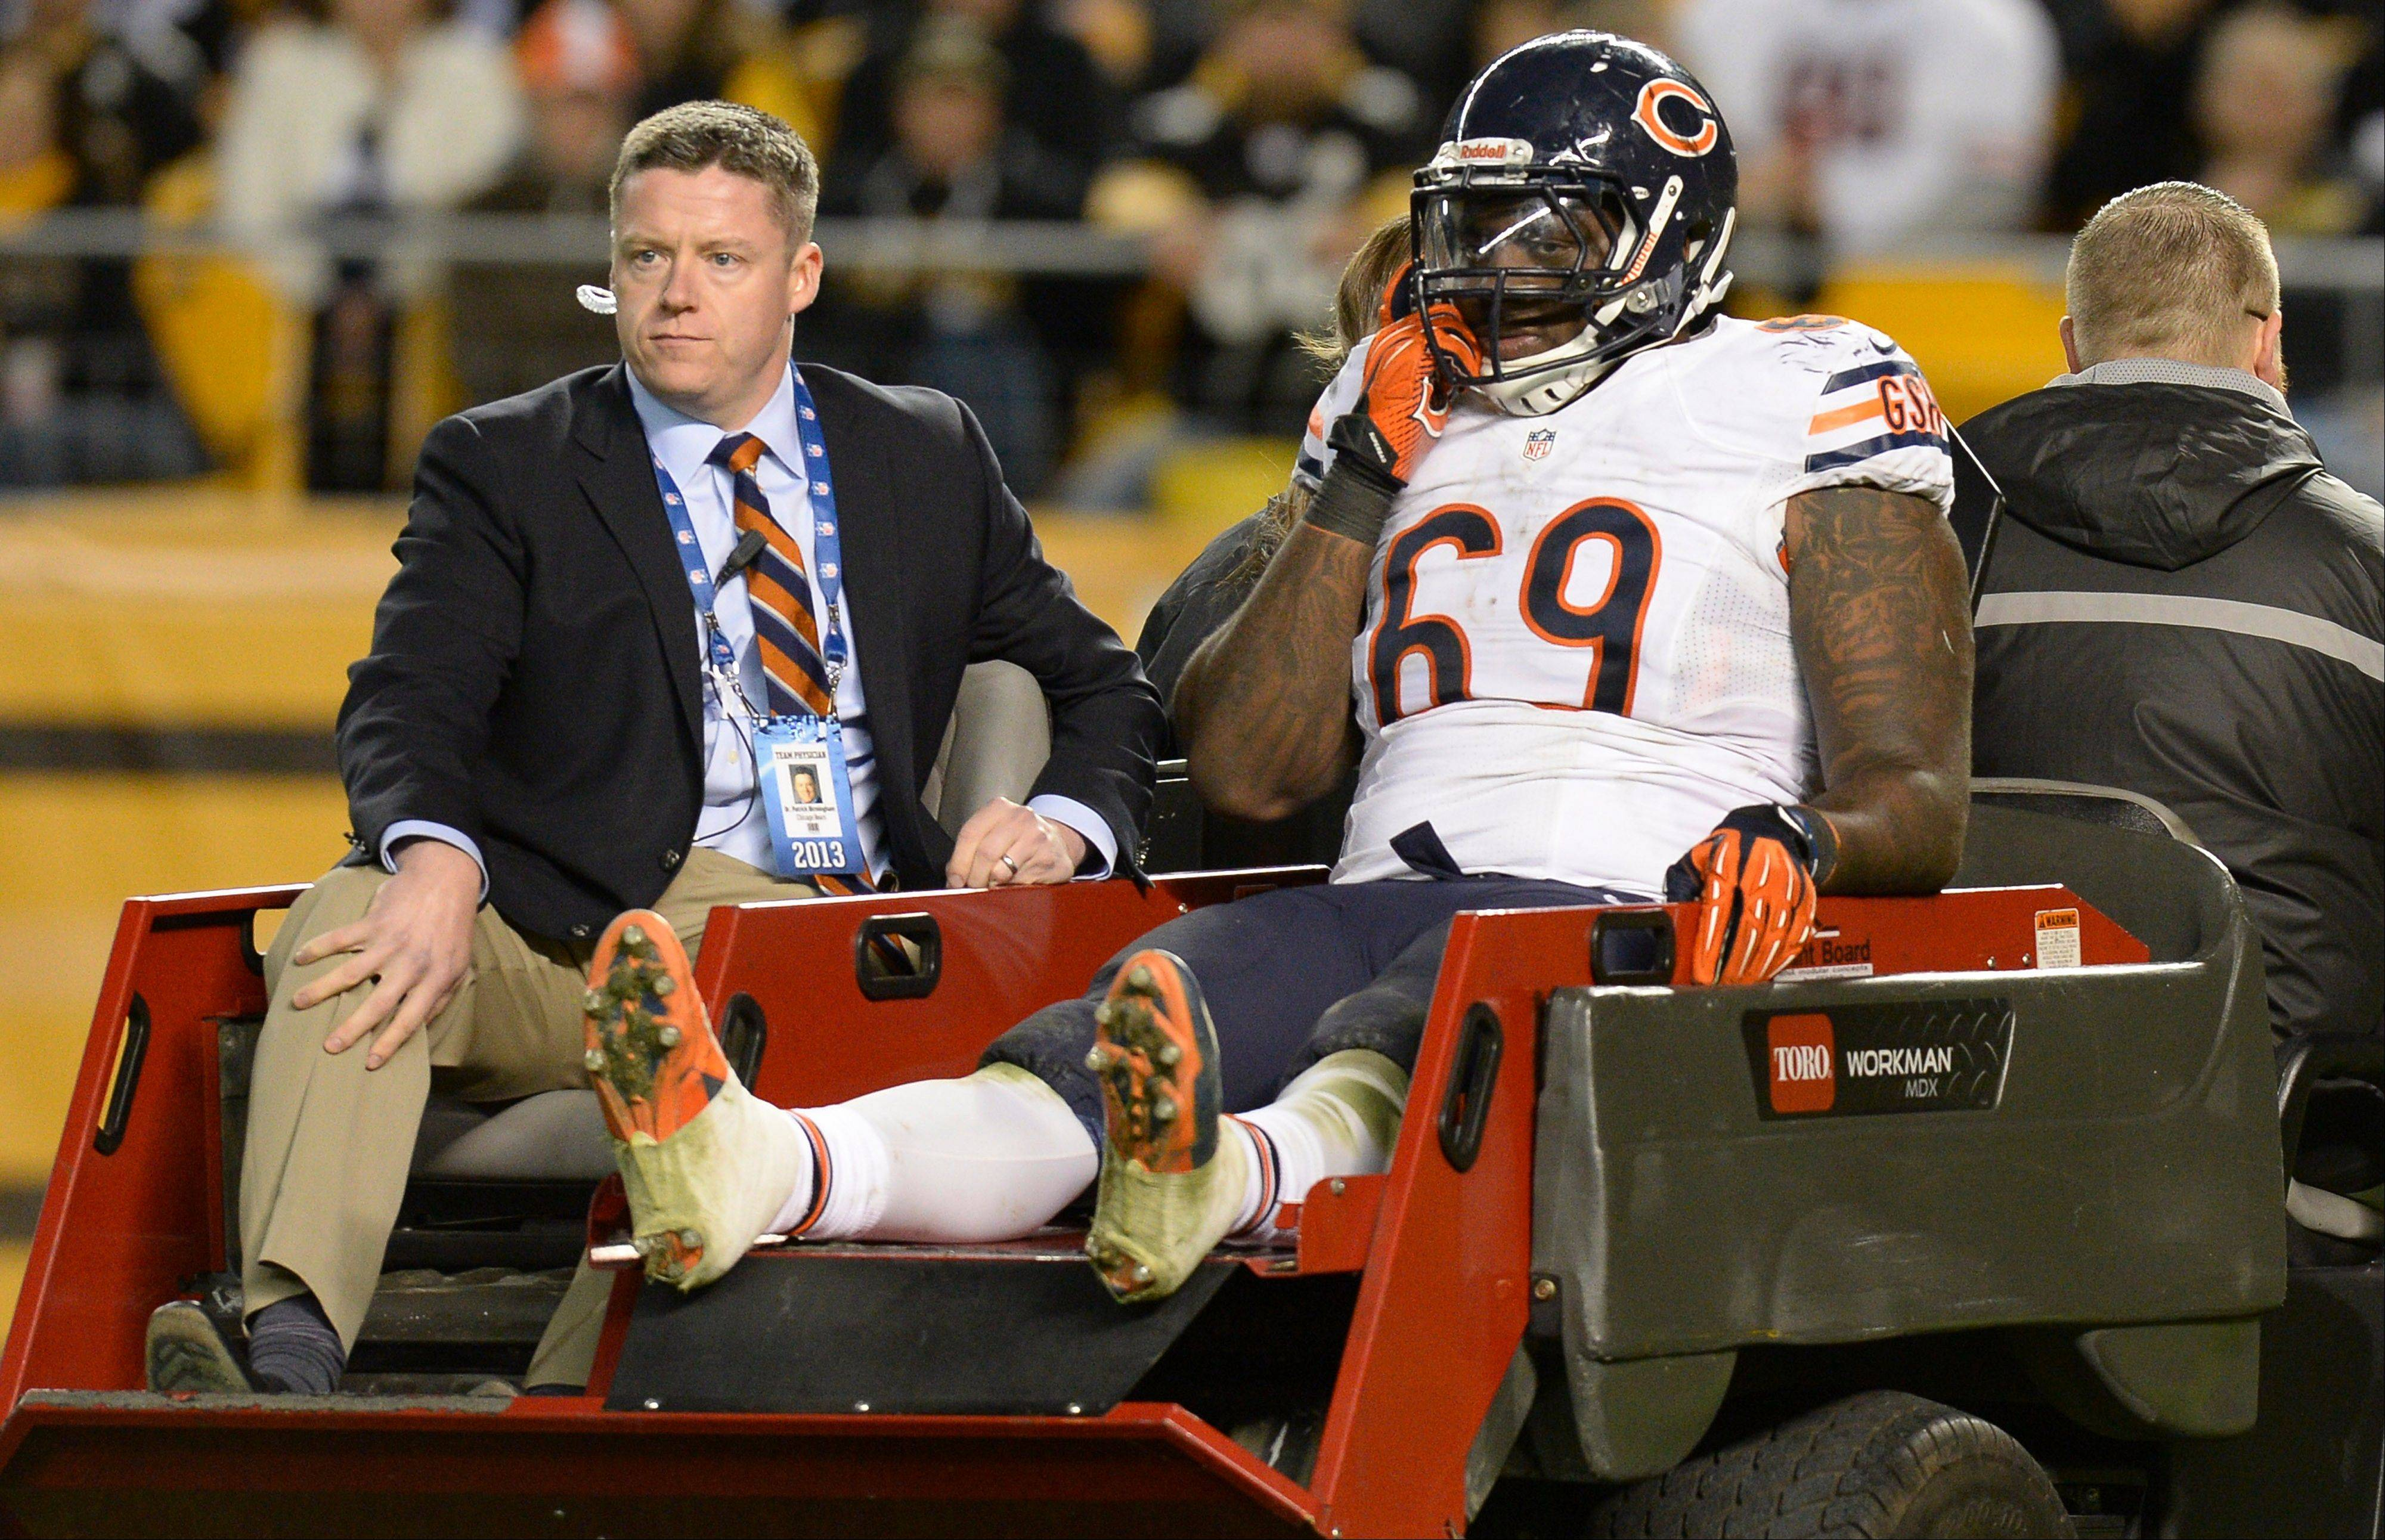 Chicago Bears defensive tackle Henry Melton (69) is carted off after being injured in the third quarter of an NFL football game against the Pittsburgh Steelers on Sunday, Sept. 22, 2013, in Pittsburgh.